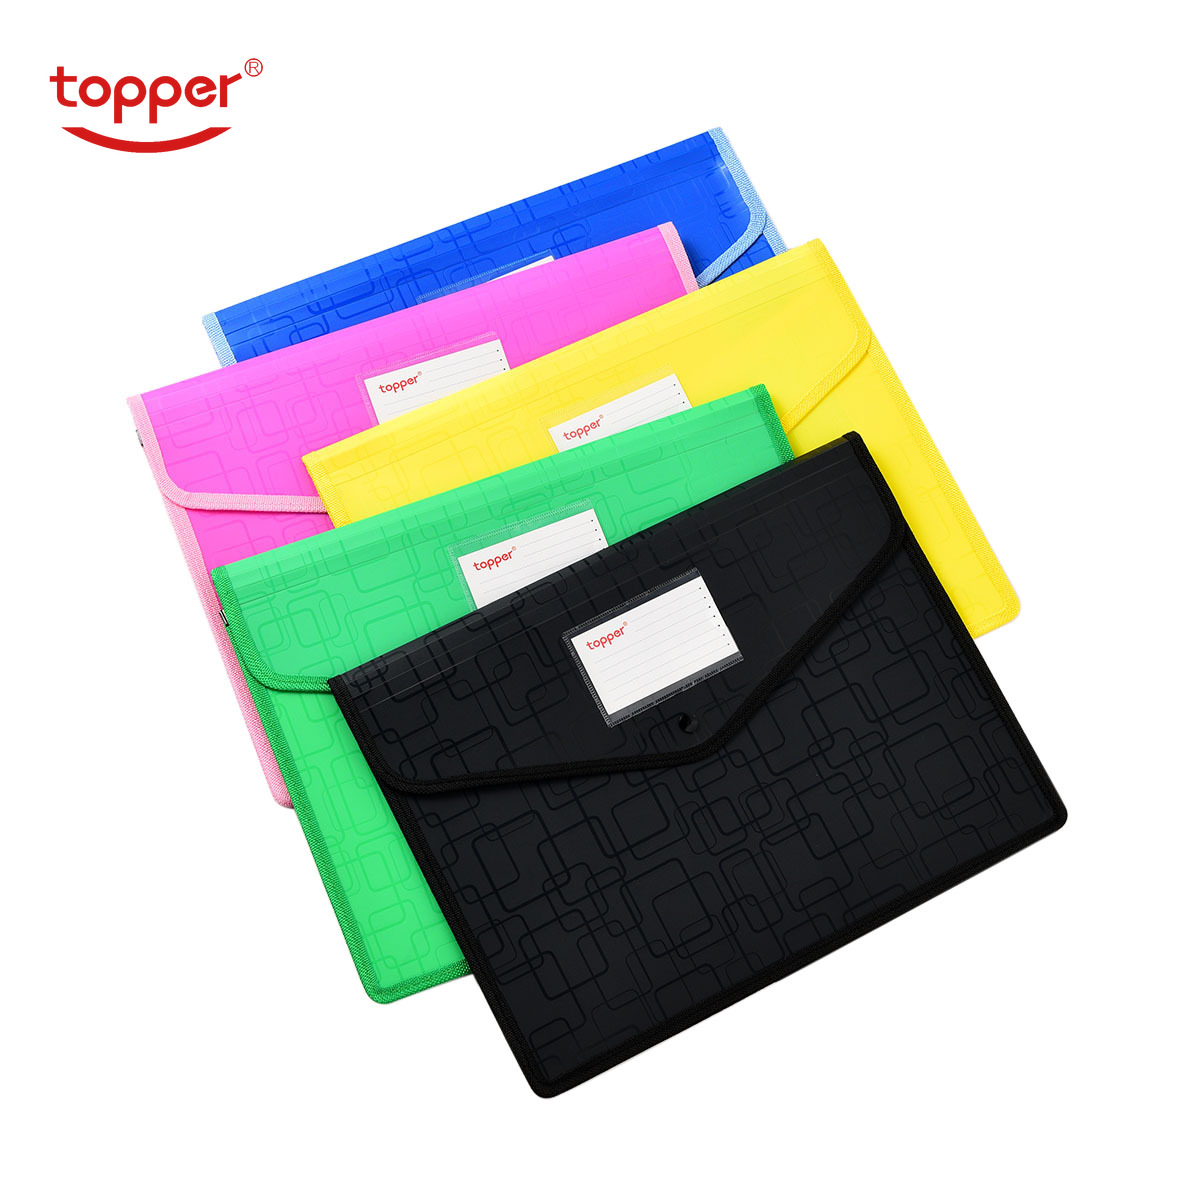 opaque A4/FC file bag thickened waterproof stereo file bag large capacity Document Hold Bags folders storage folder free shipingopaque A4/FC file bag thickened waterproof stereo file bag large capacity Document Hold Bags folders storage folder free shiping